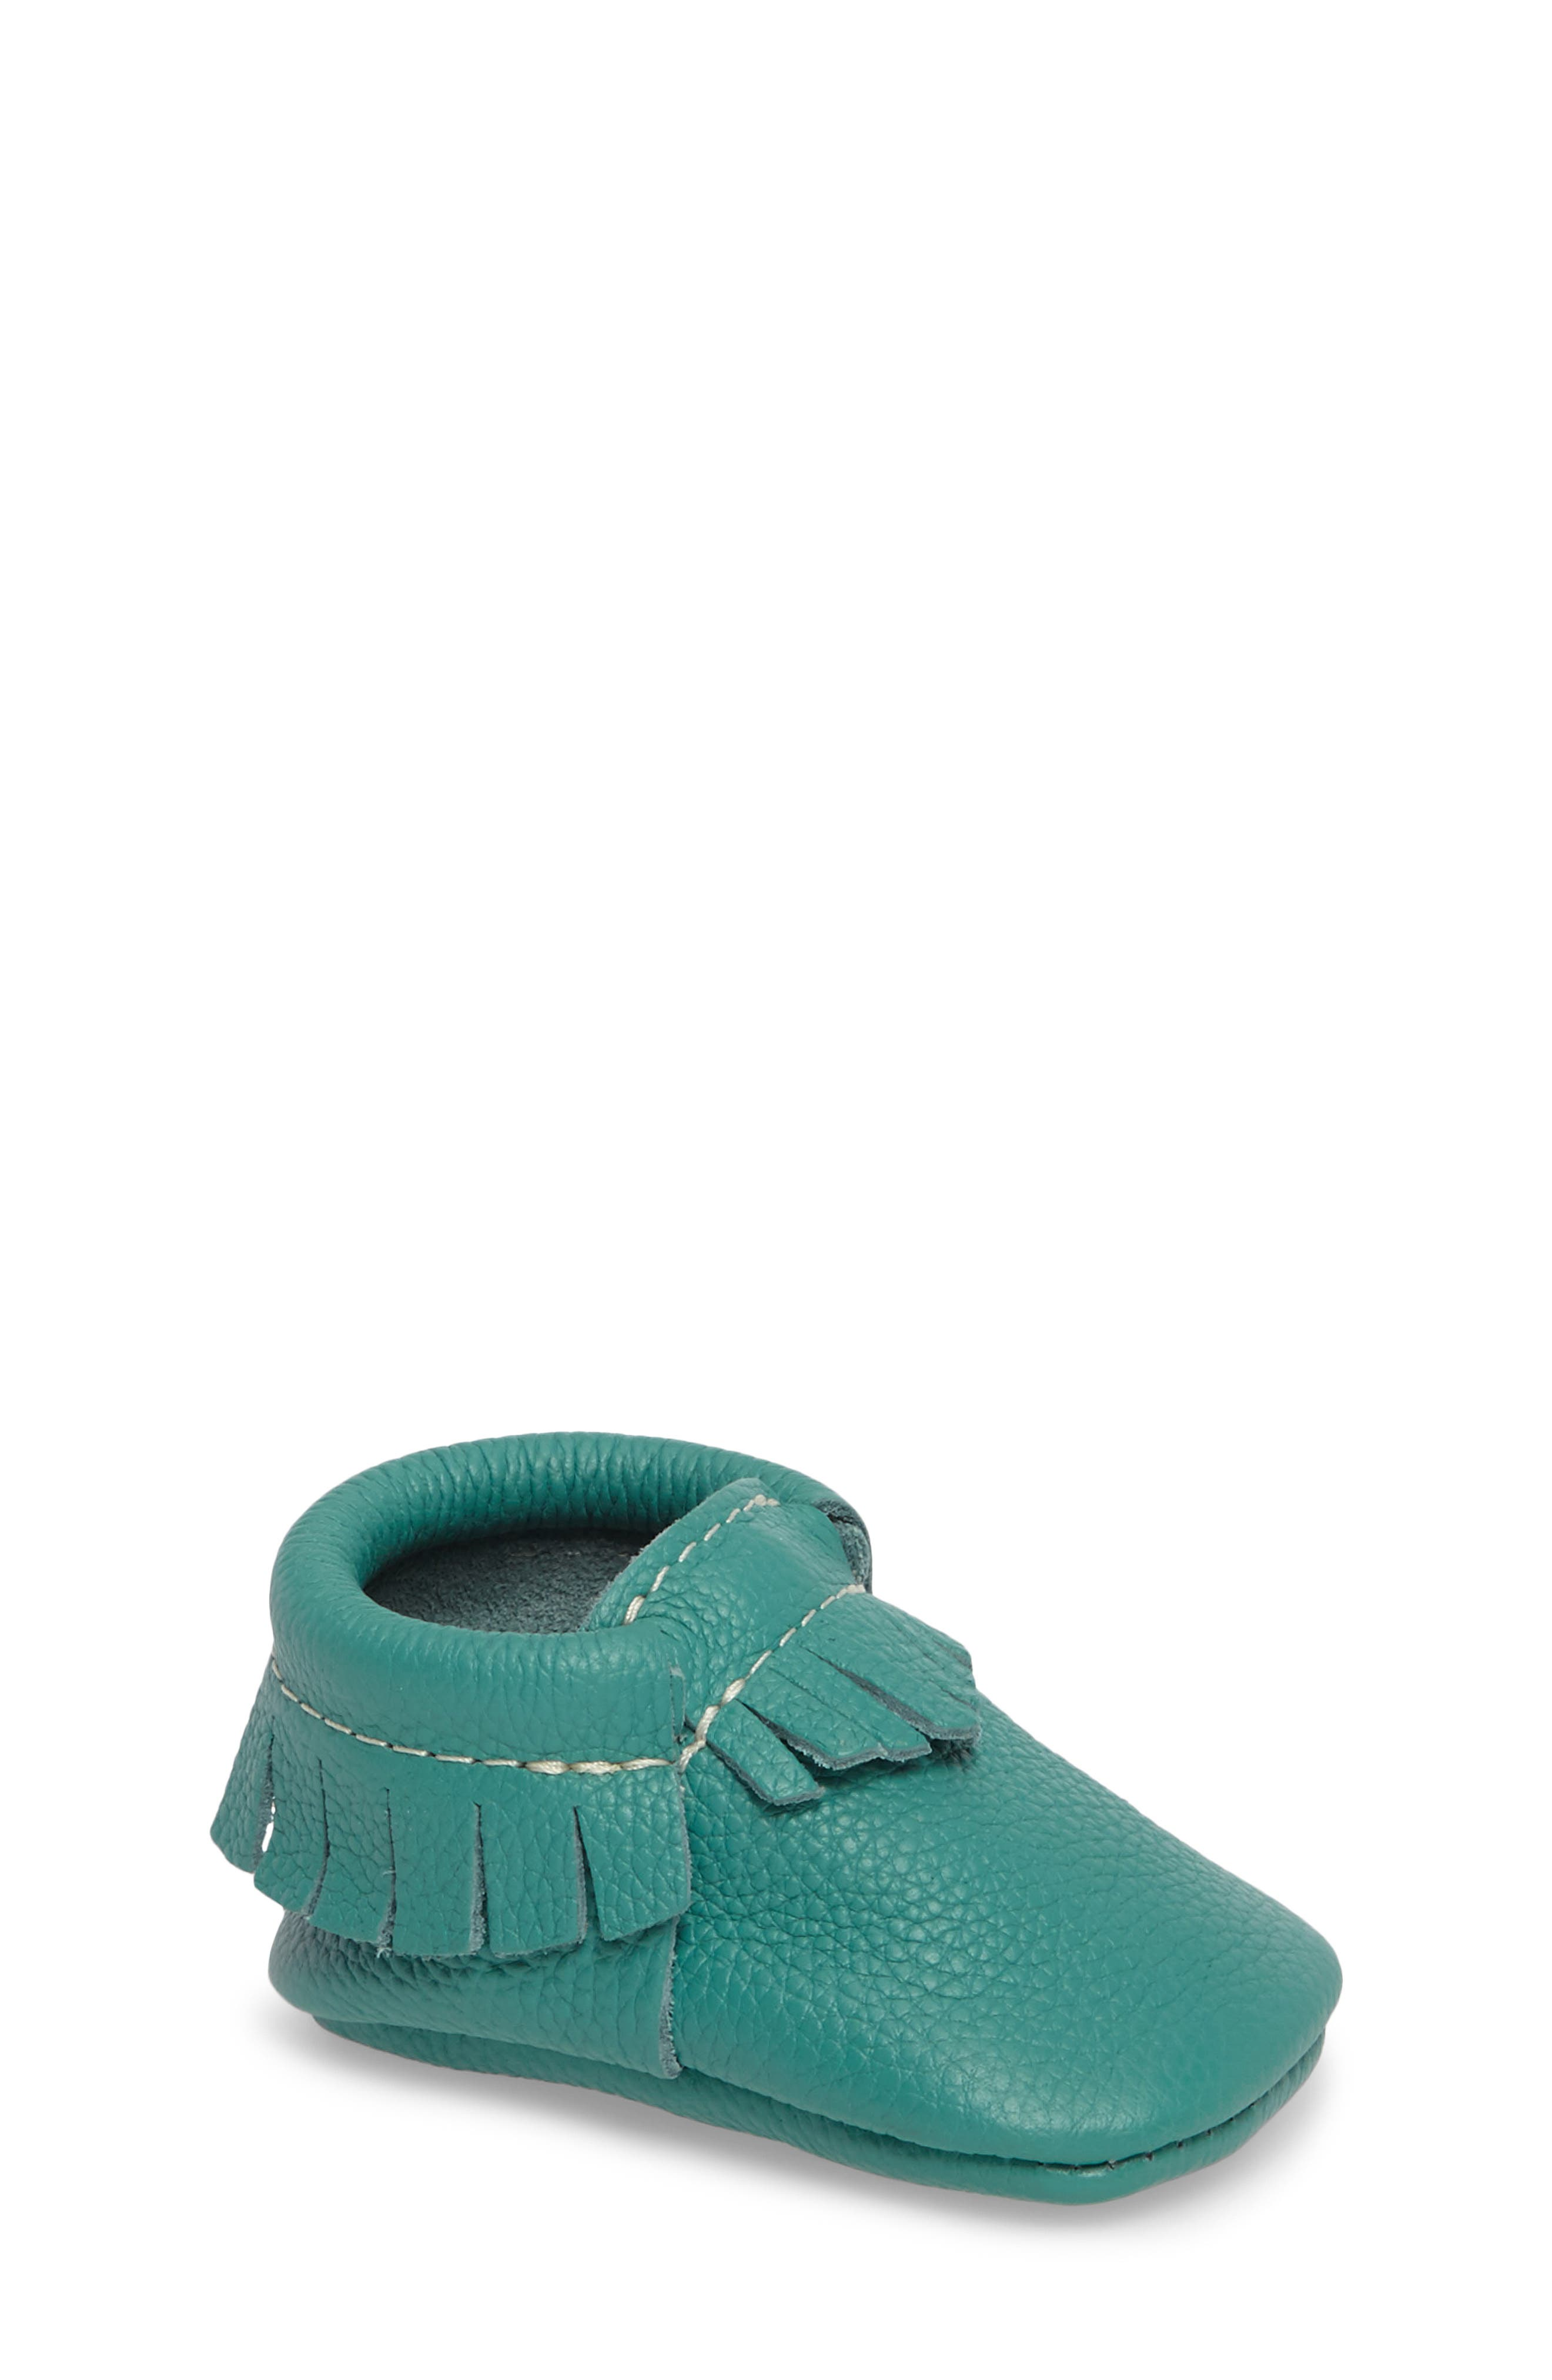 Main Image - Freshly Picked Classic Moccasin (Baby, Walker & Toddler)